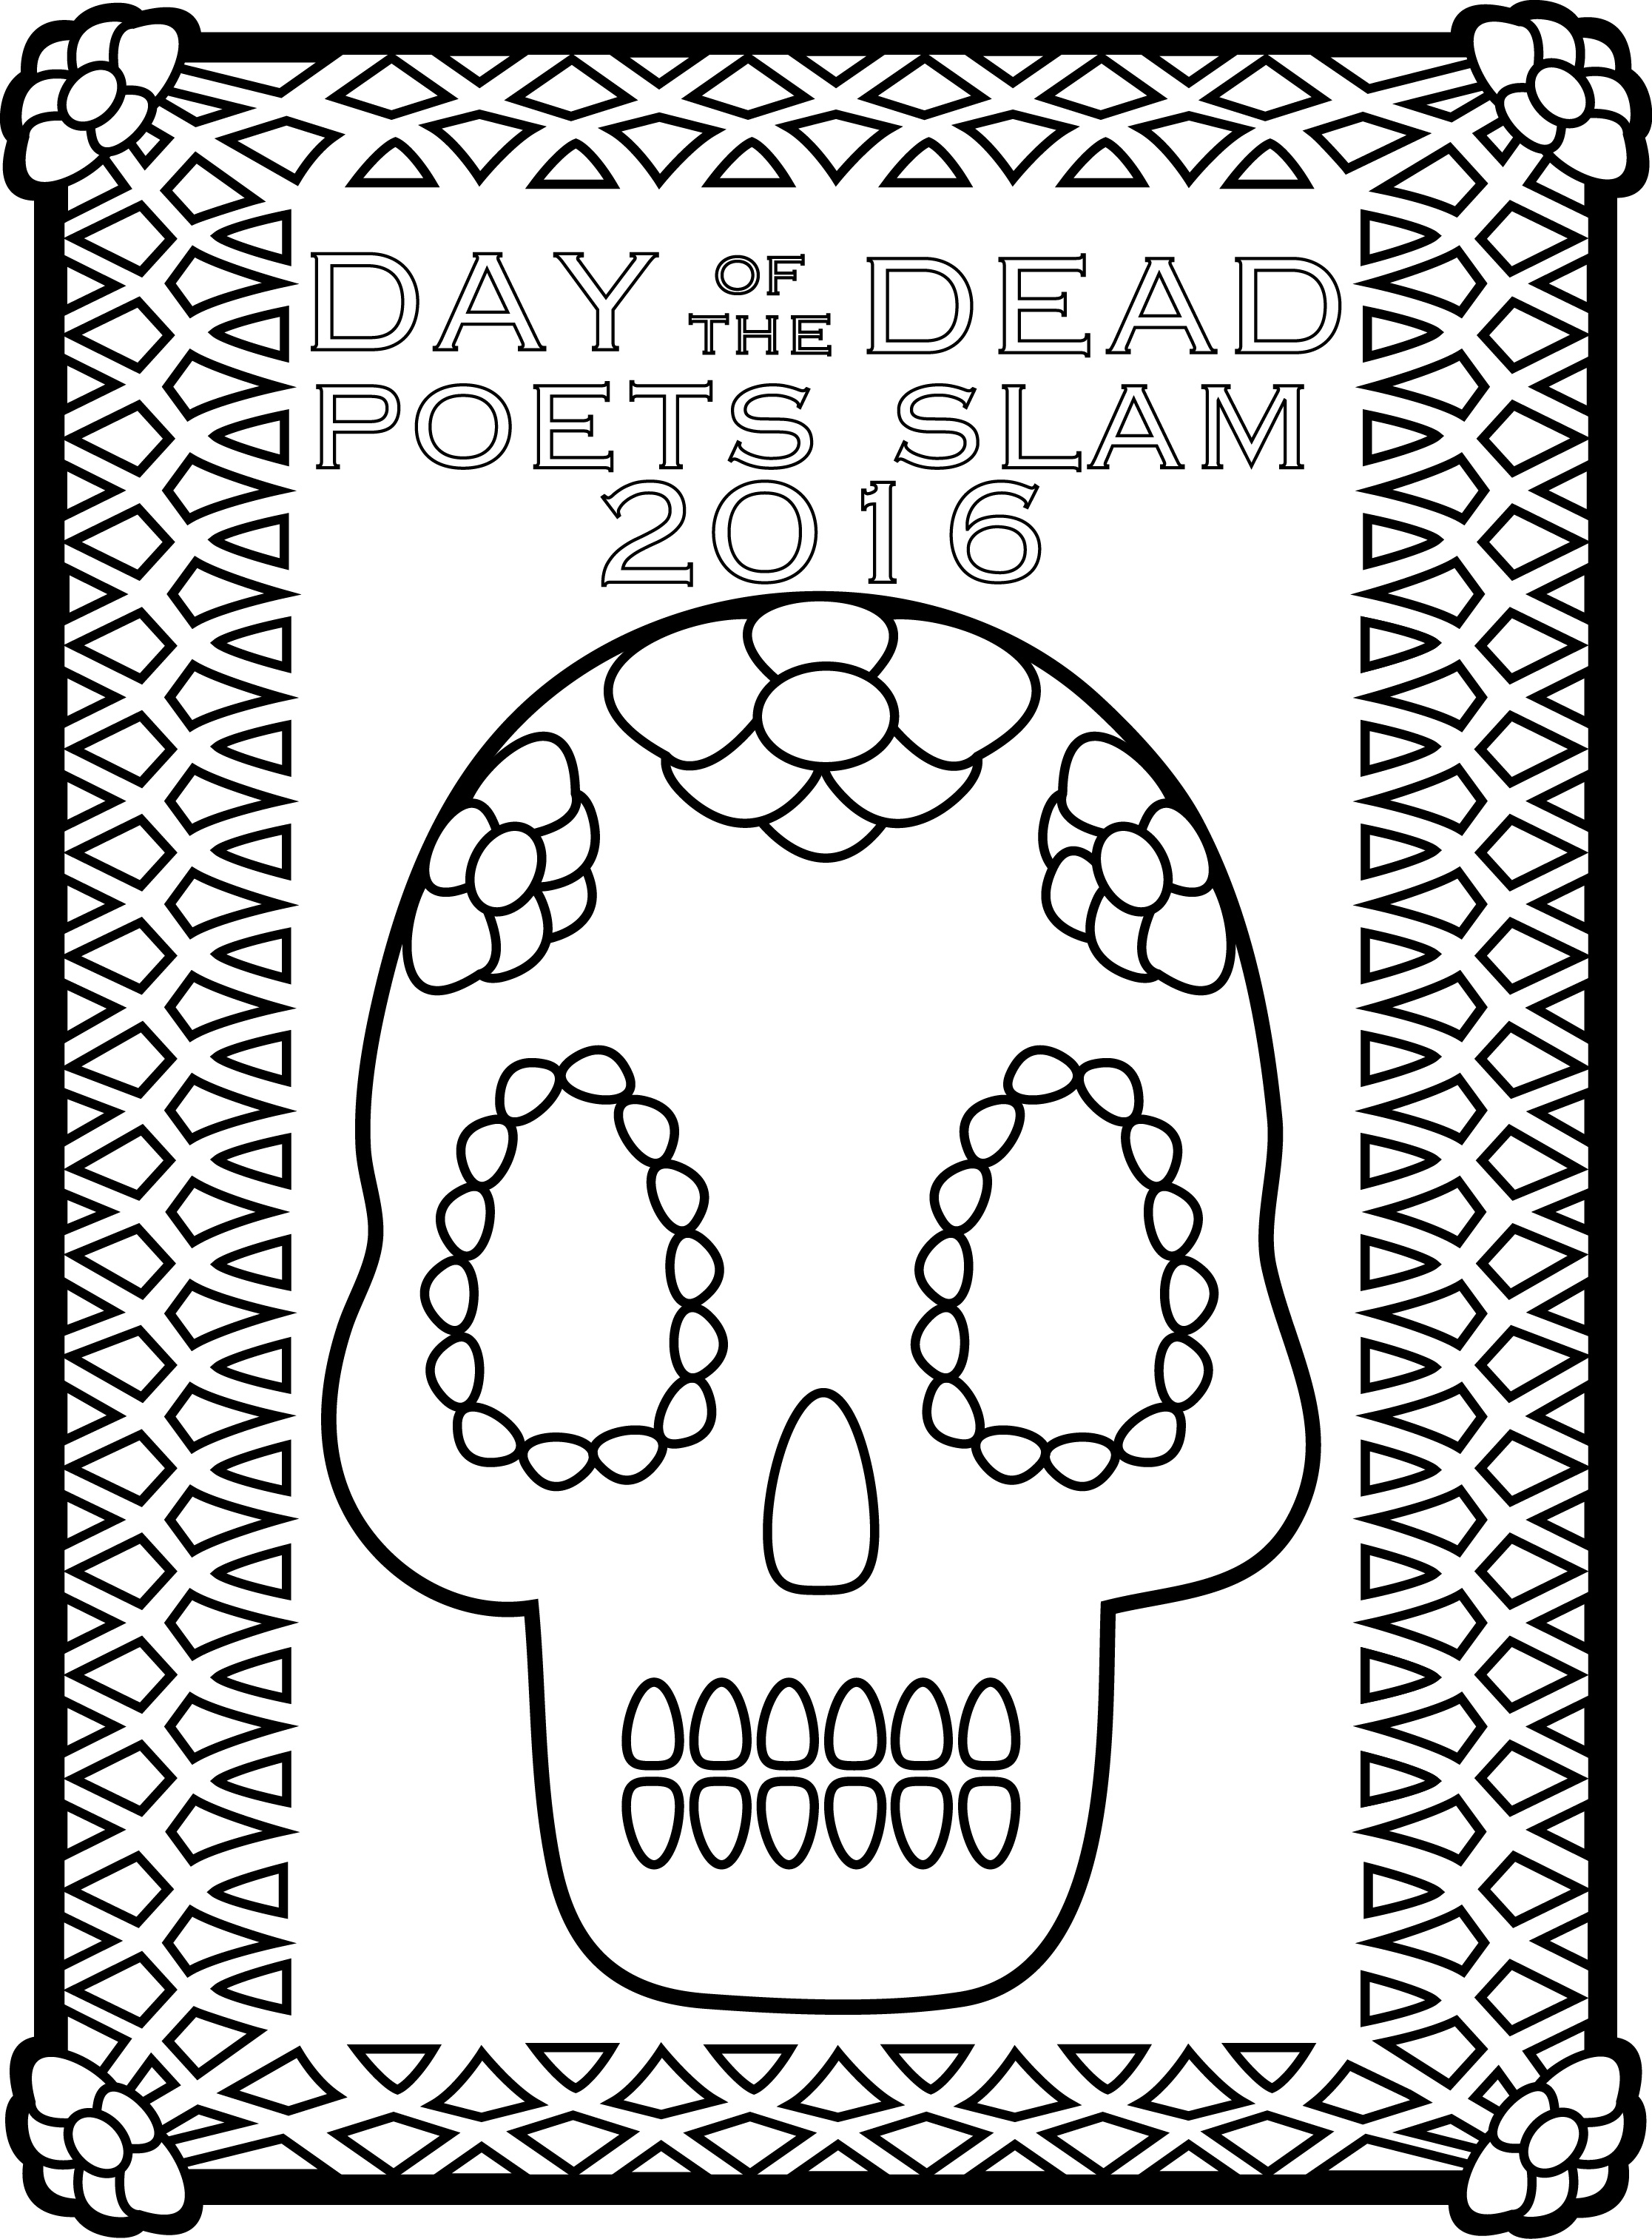 Coloring Book, Art by Local Artists – Day of the Dead Poets Slam